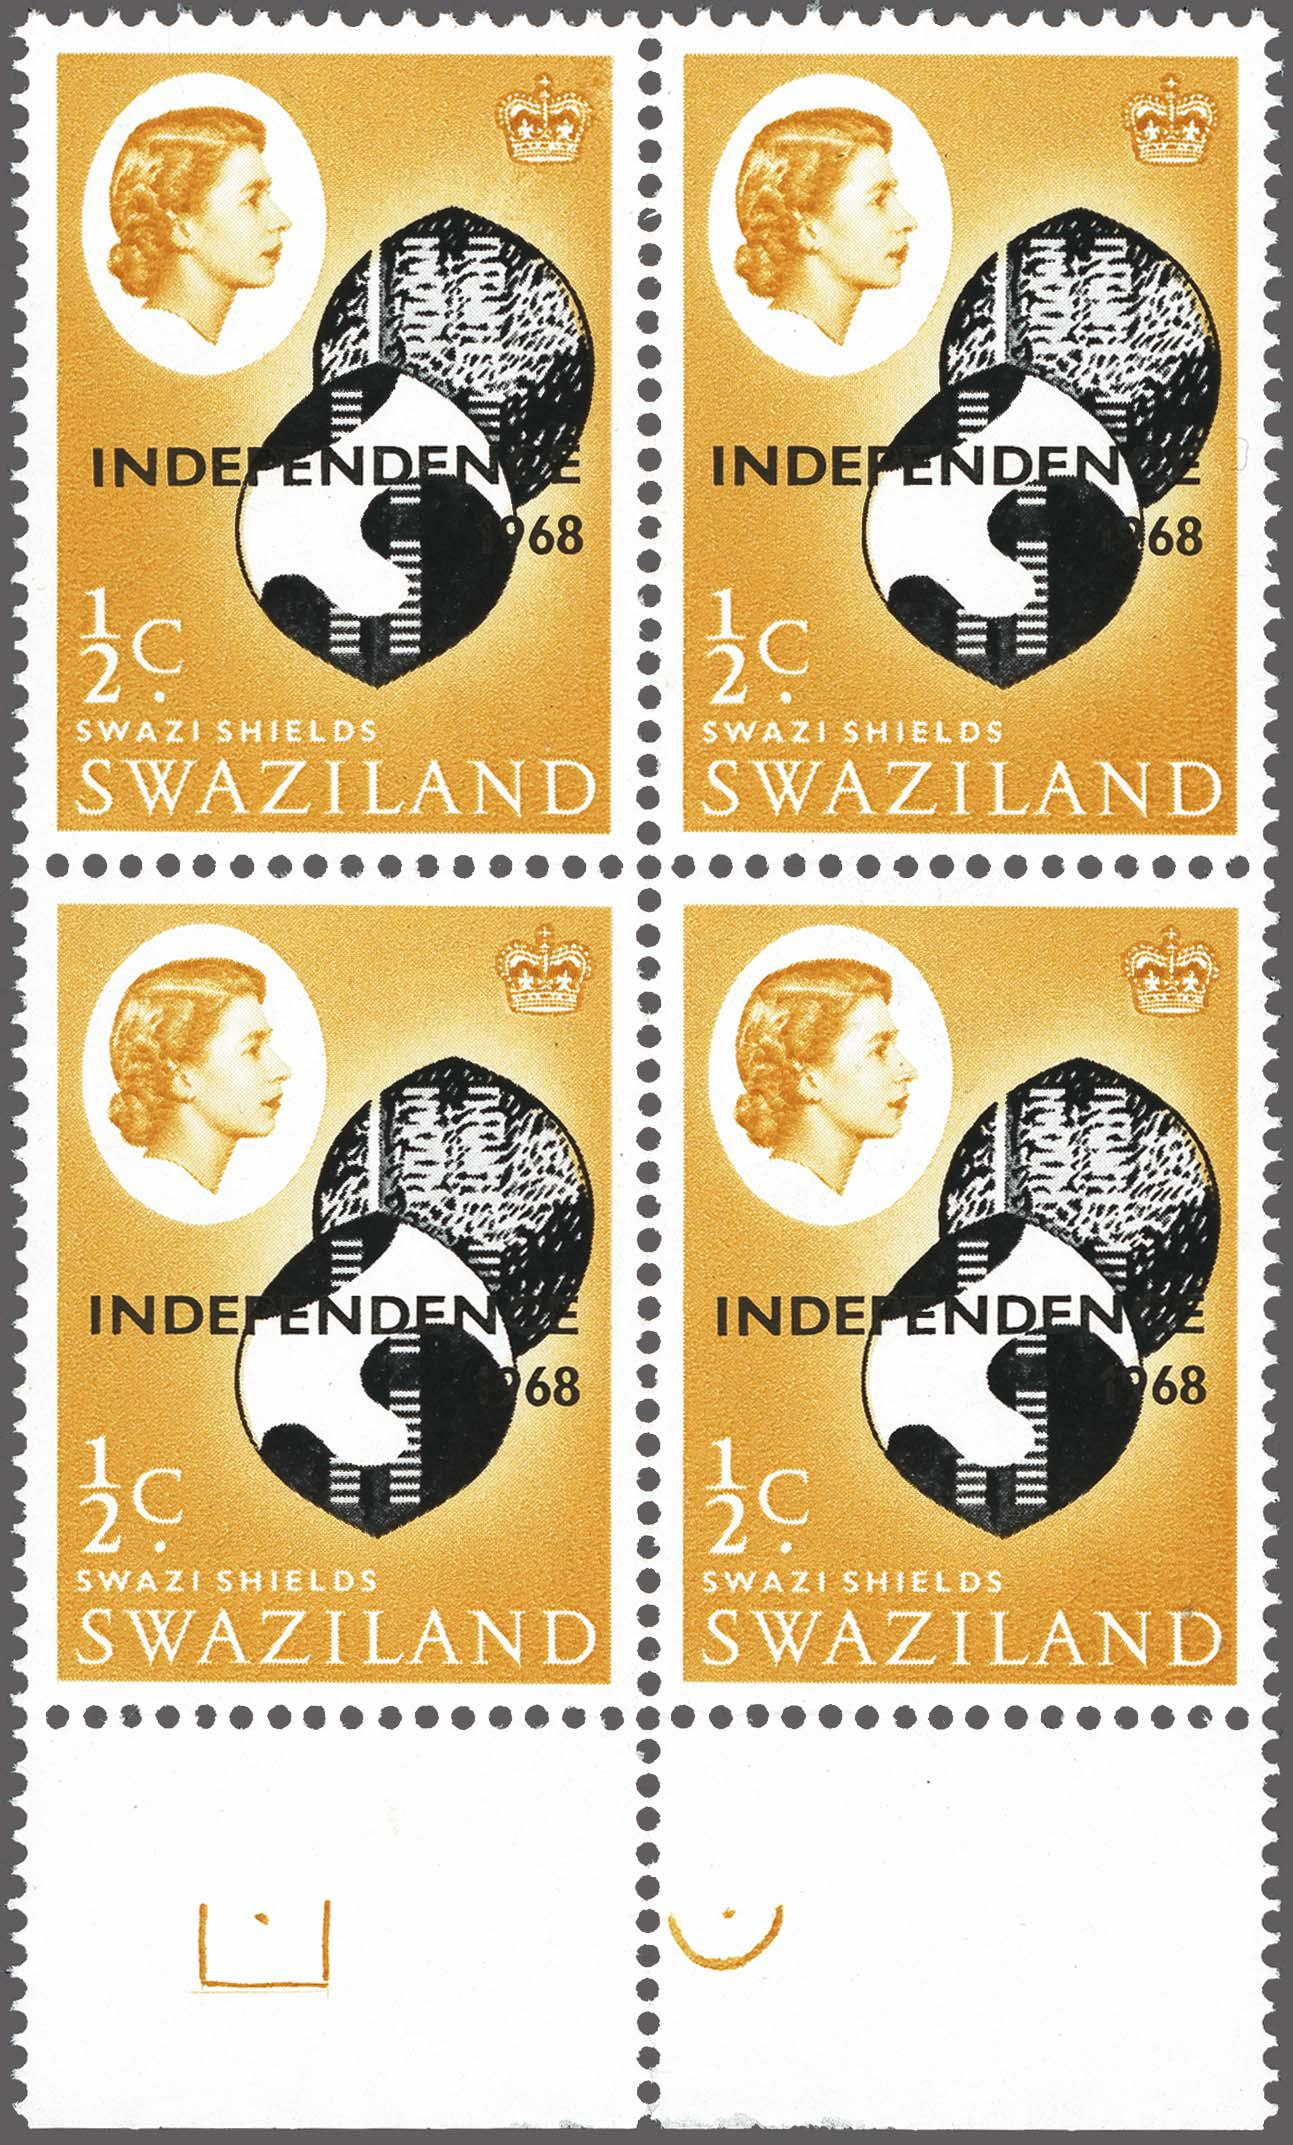 Lot 194 - Great Britain and former colonies swaziland -  Corinphila Veilingen Auction 250-253 - Day 1 - Foreign countries